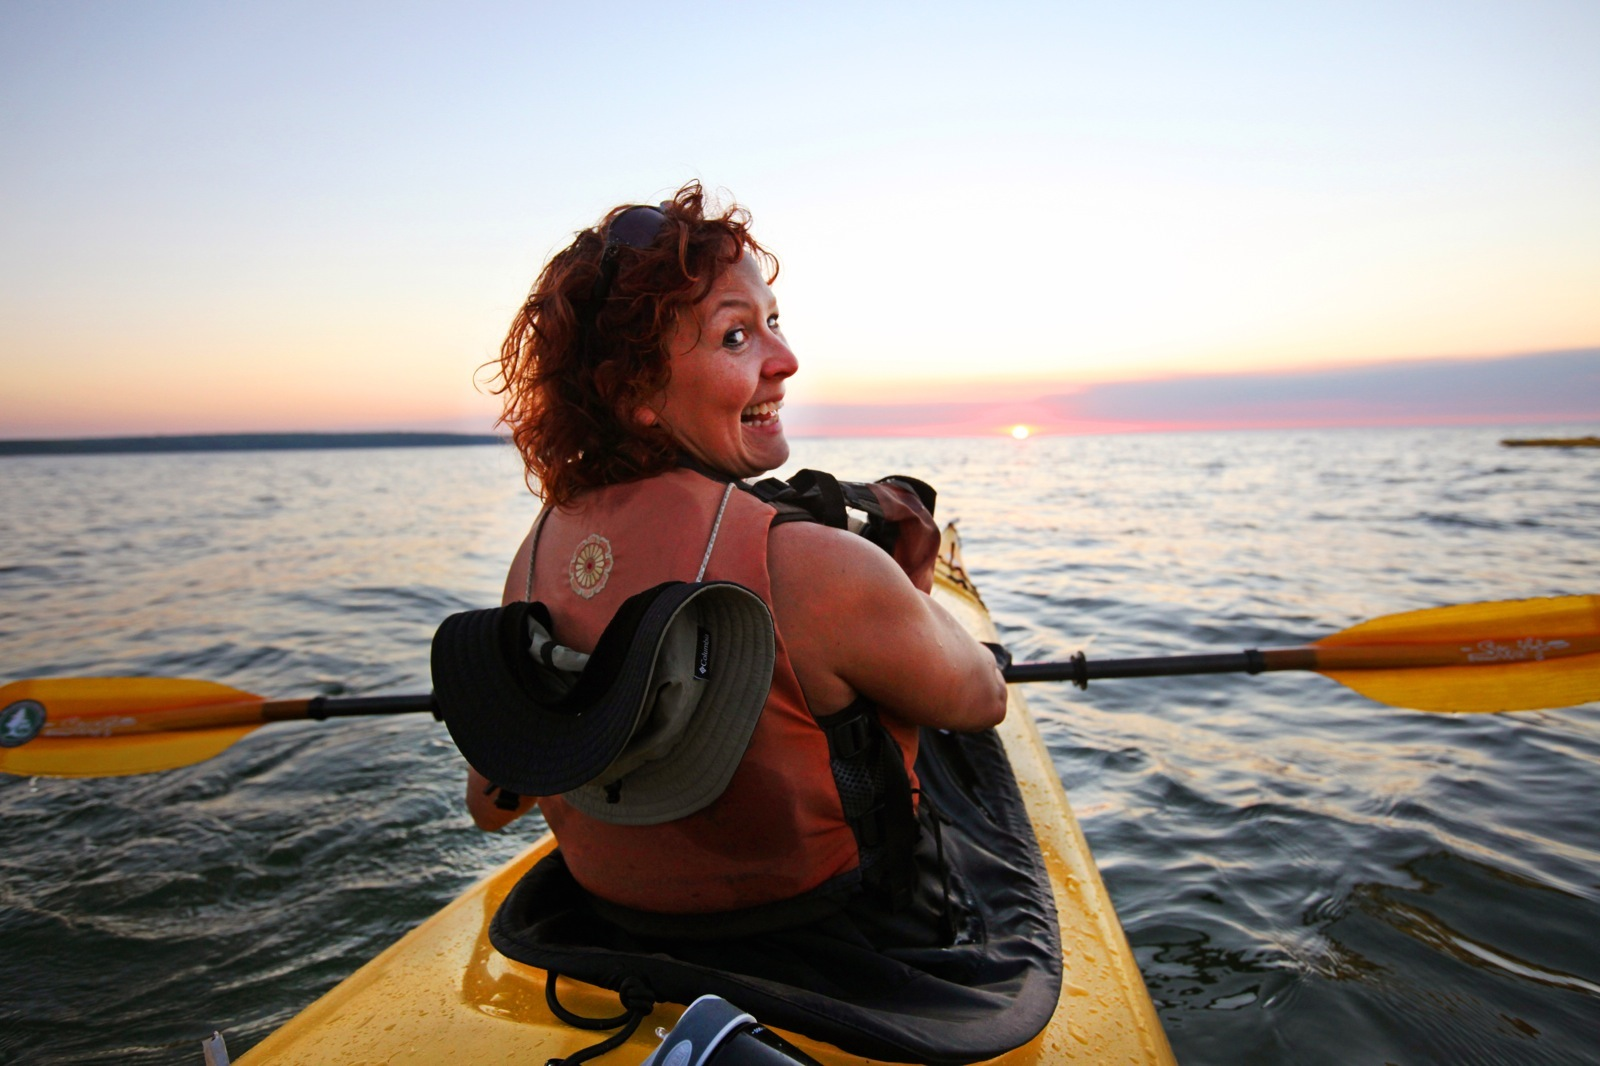 Woman turns around in yellow sea kayak, smiles for camera; sun setting in background.